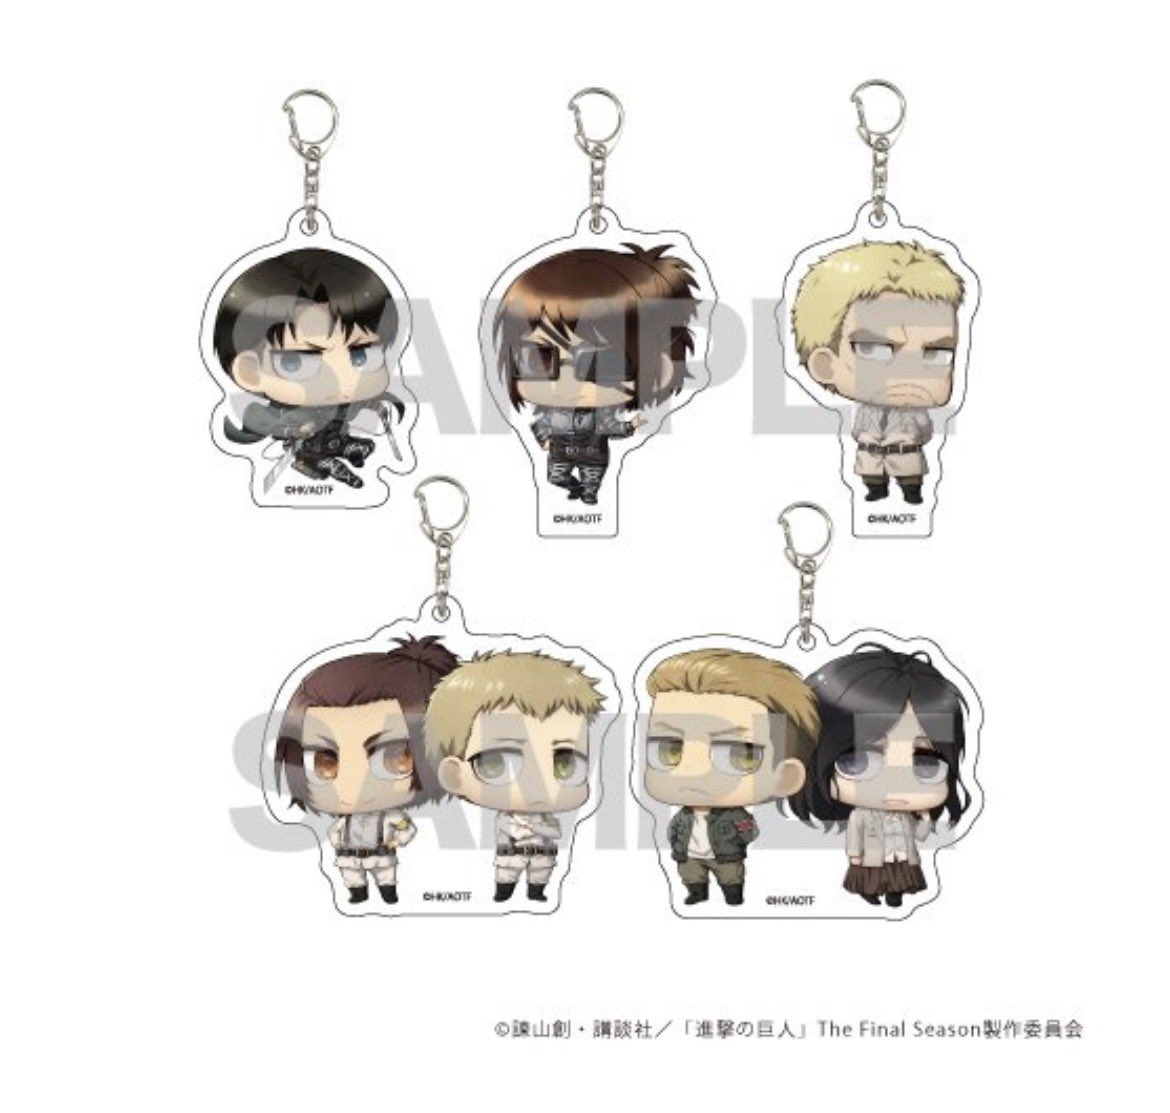 [OPEN FAST PRE ORDER MERCH #AOT SEASON FINAL] 🇮🇩  🗞STANDE 🗞KEYRING SET  🗞LEATHER STRAP 🗞MIRROR 🗞CASE HP 🗞CHARACTER PASS 🗞CANVAS ART   🔎Detail :   CLOSE : 10 - 03  SHIPPING WEB : APRIL   📌INVITED GROUP ORDER   DM FOR PAYMENT 💌 #AttackOnTitan